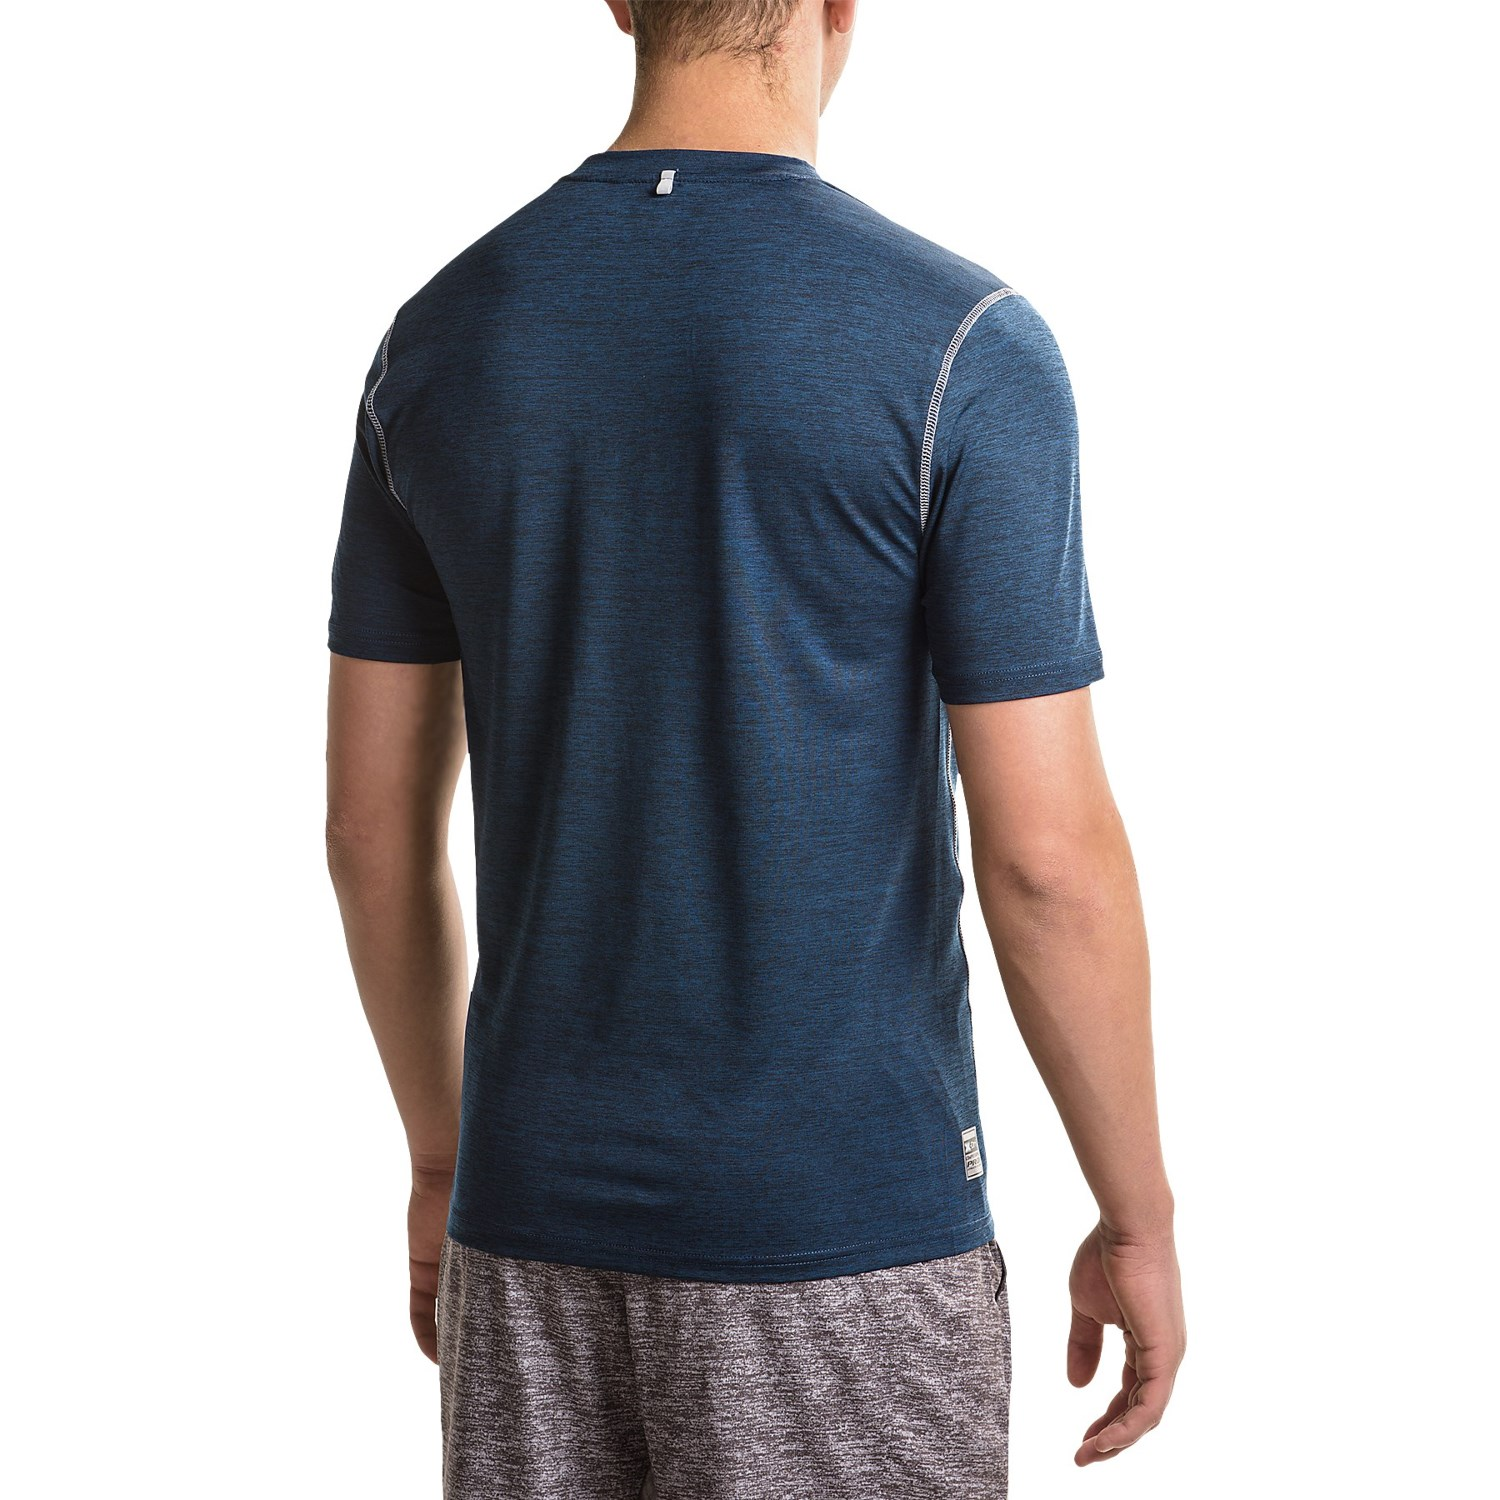 Rbx striated compression t shirt for men save 77 for Compression tee shirts for men